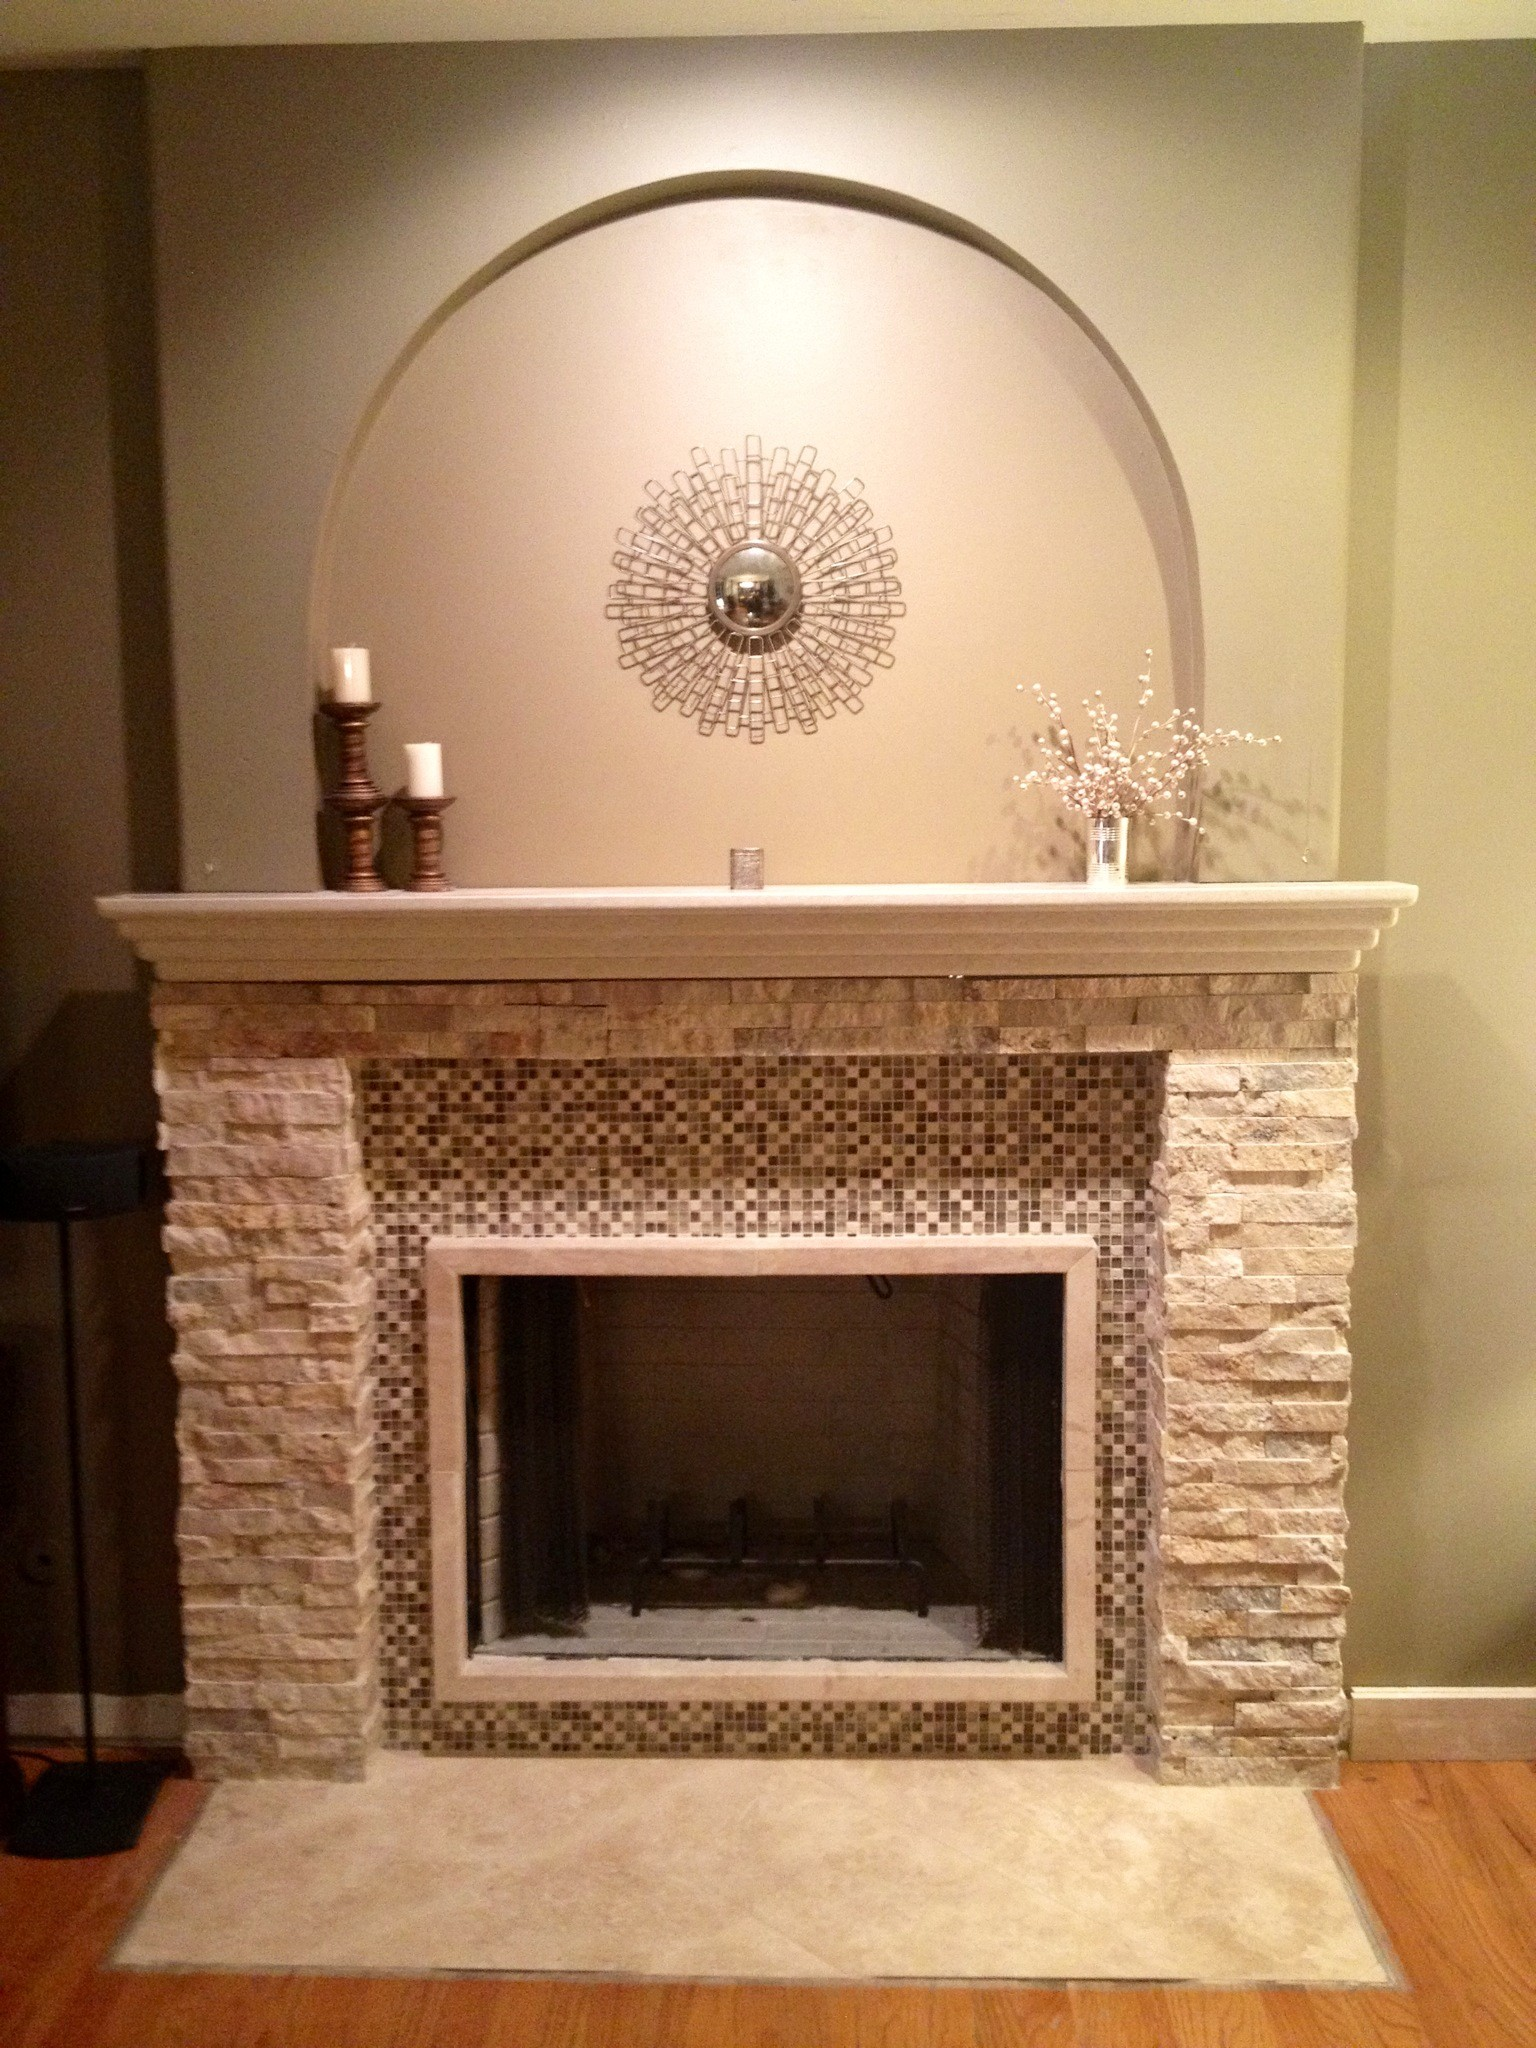 Marble fireplace surround ideas bring a warm - Stone fireplace surround ideas ...